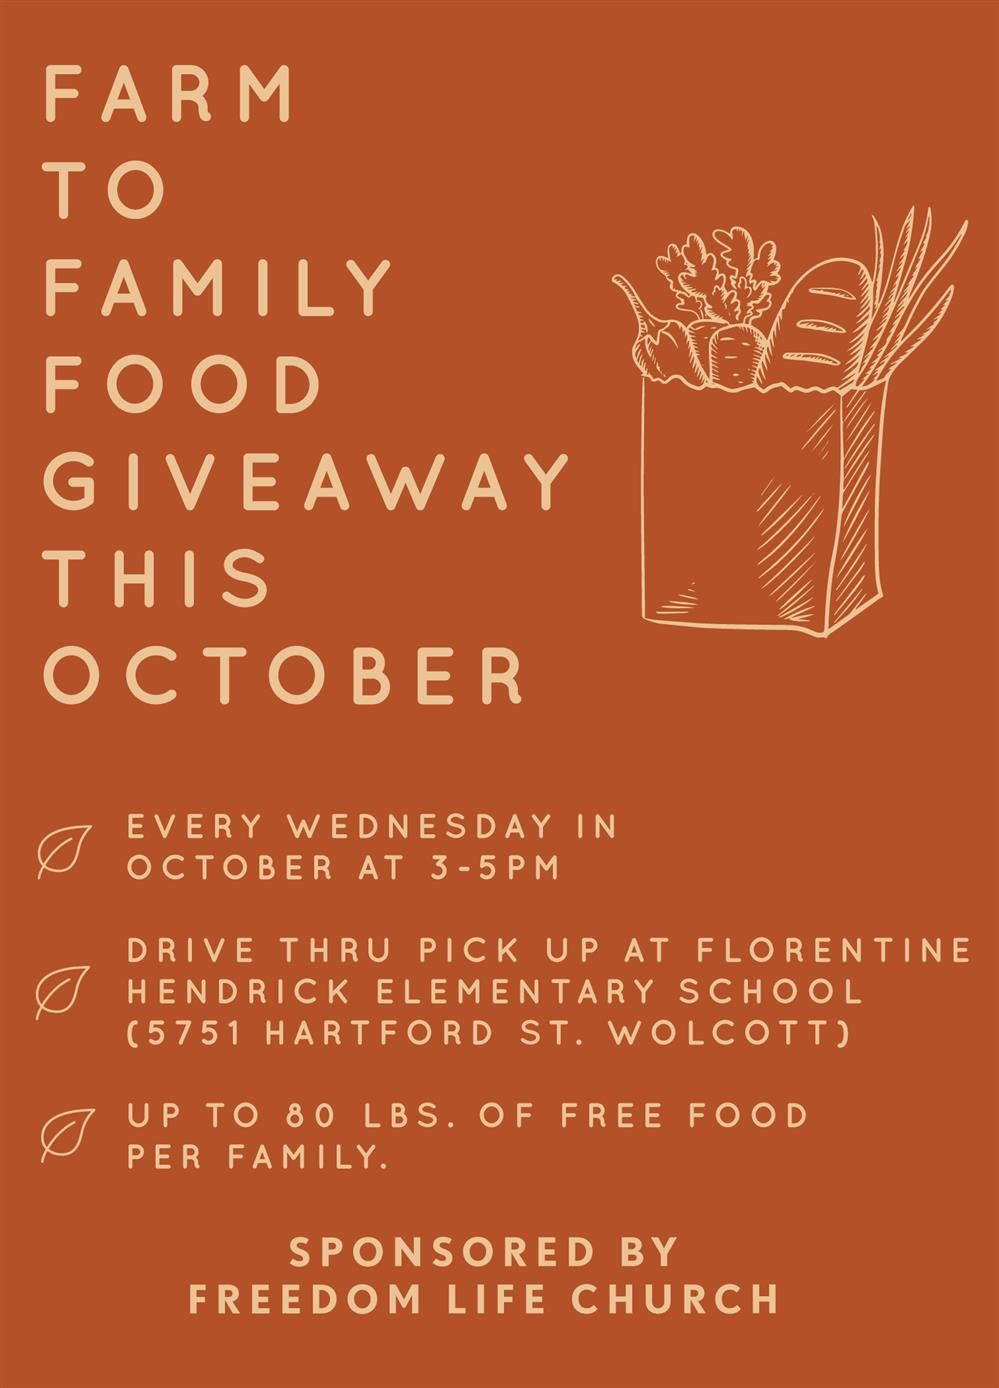 Food Giveaway - Wednesdays in October